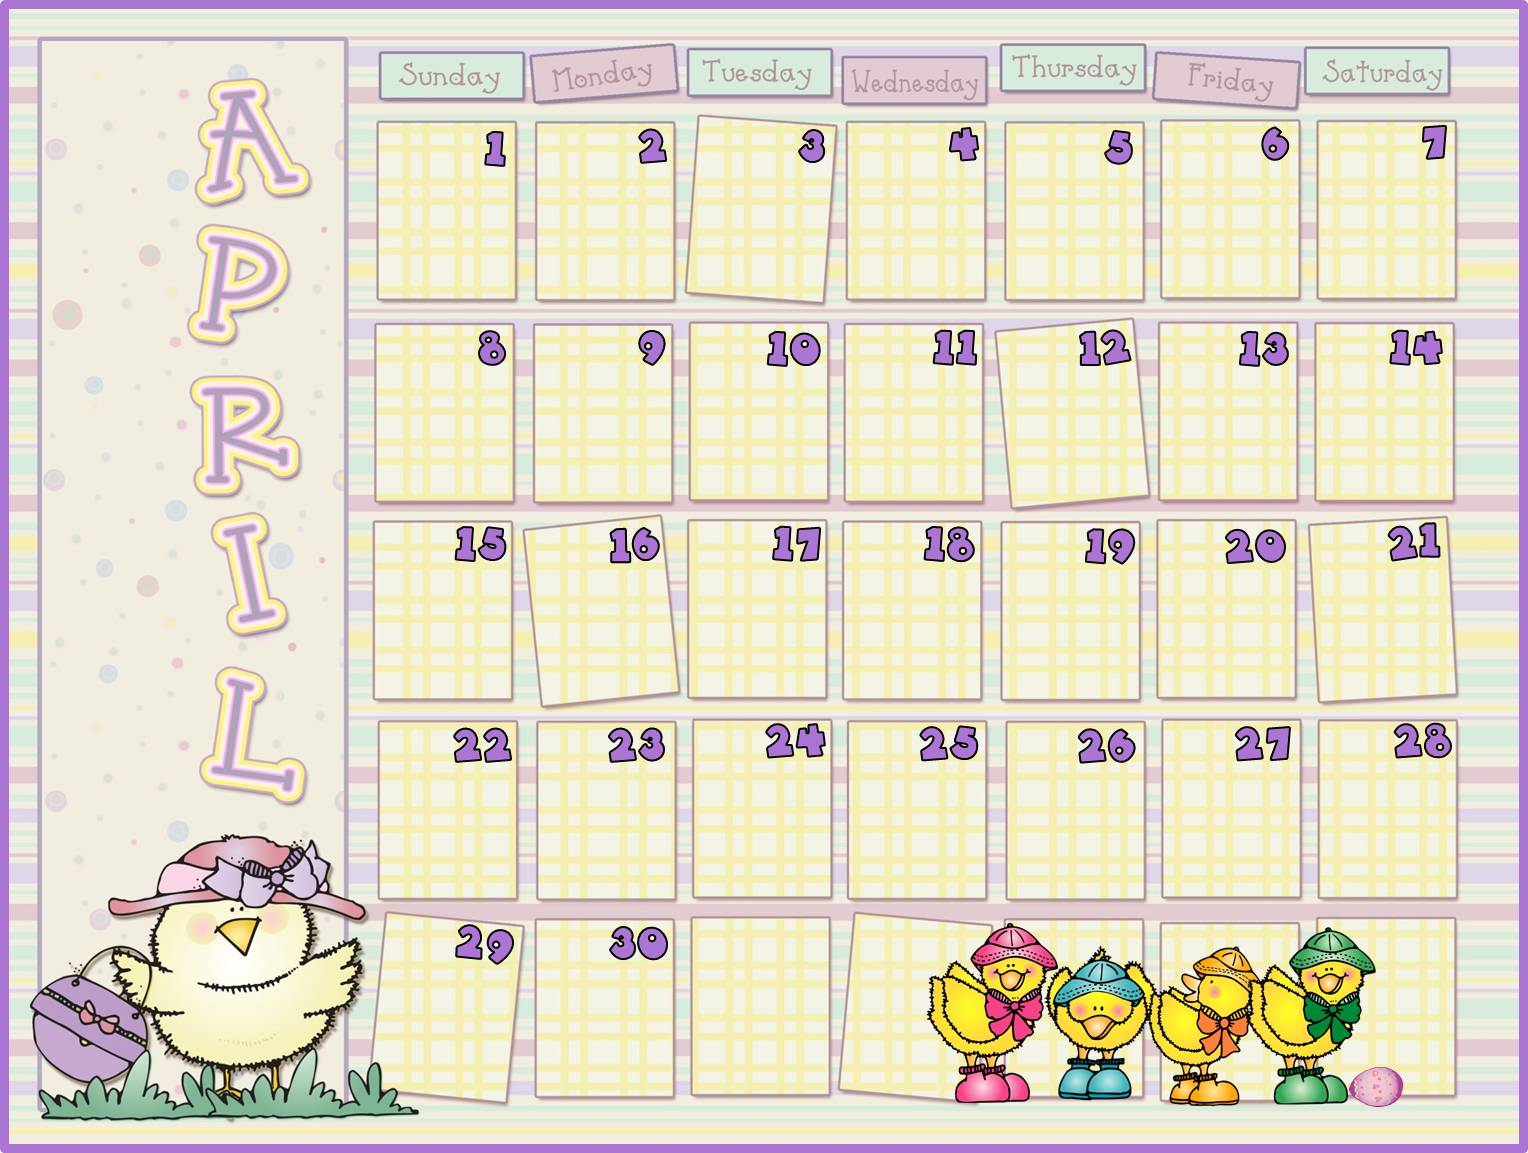 April Calendar Clipart : April calendar clipart suggest